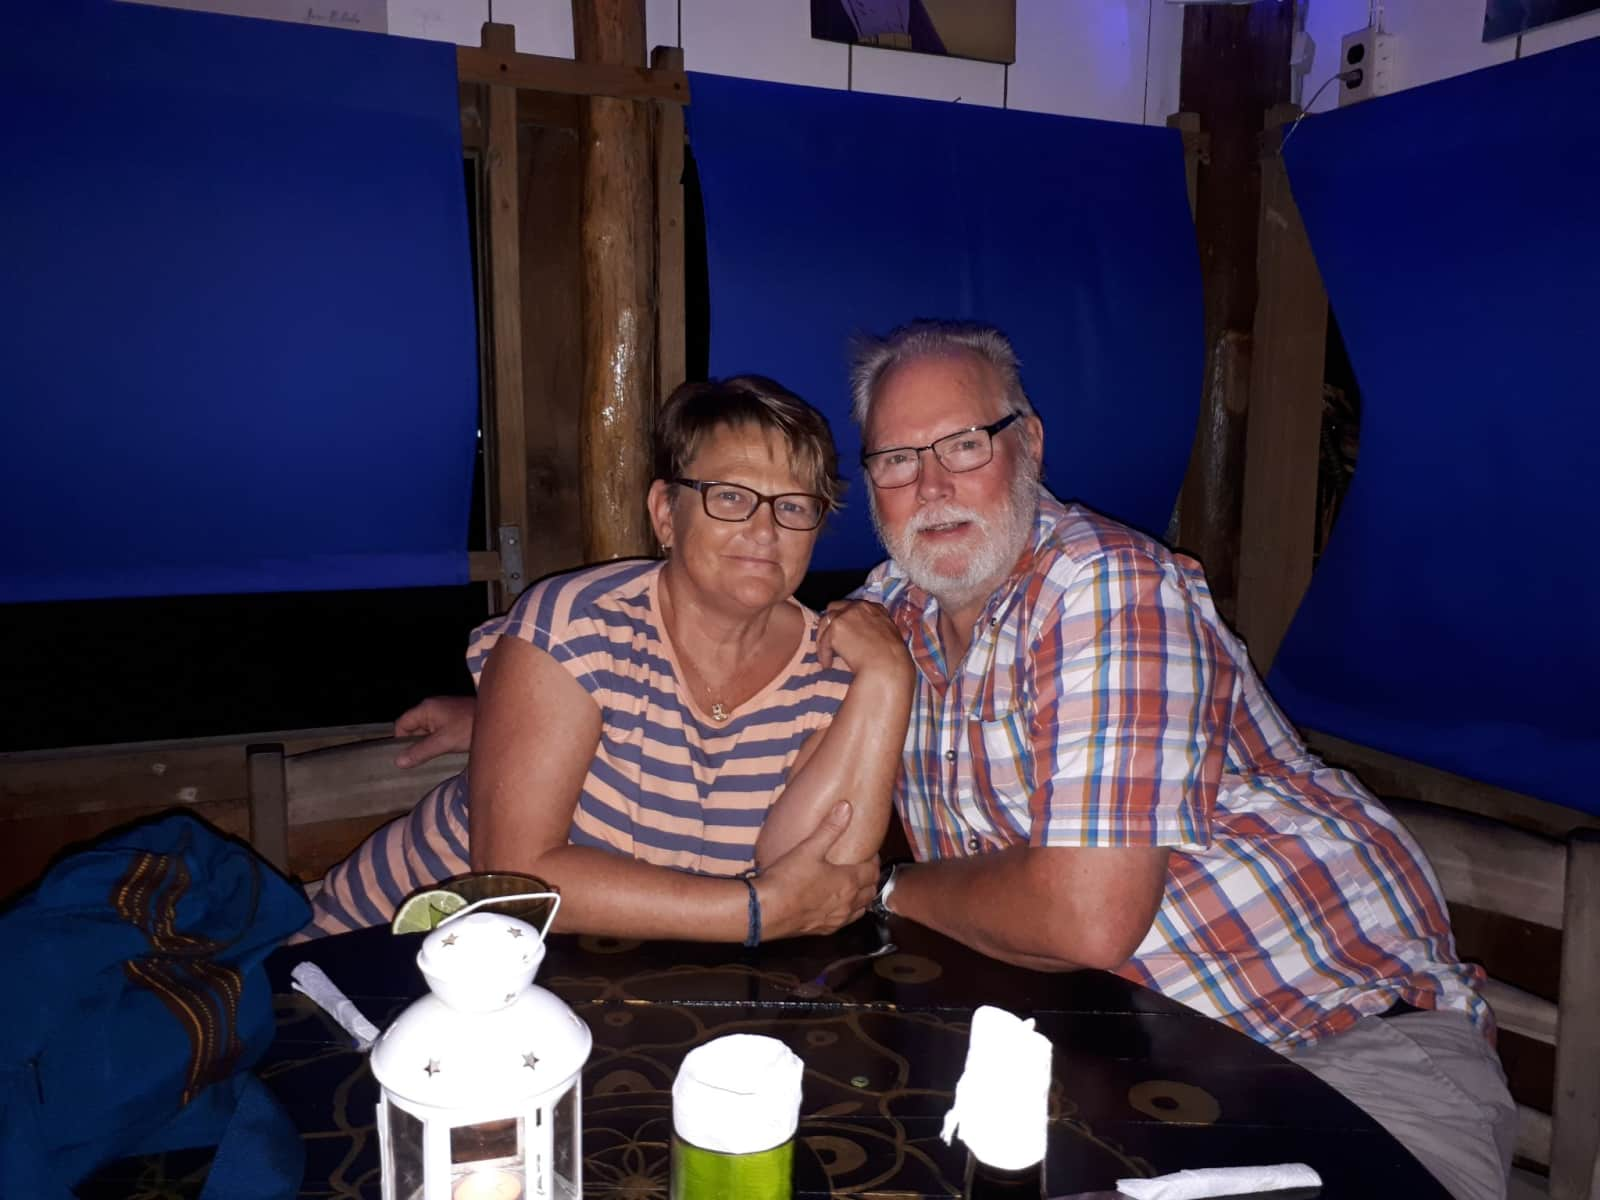 Ruth & John from Collingwood, Ontario, Canada